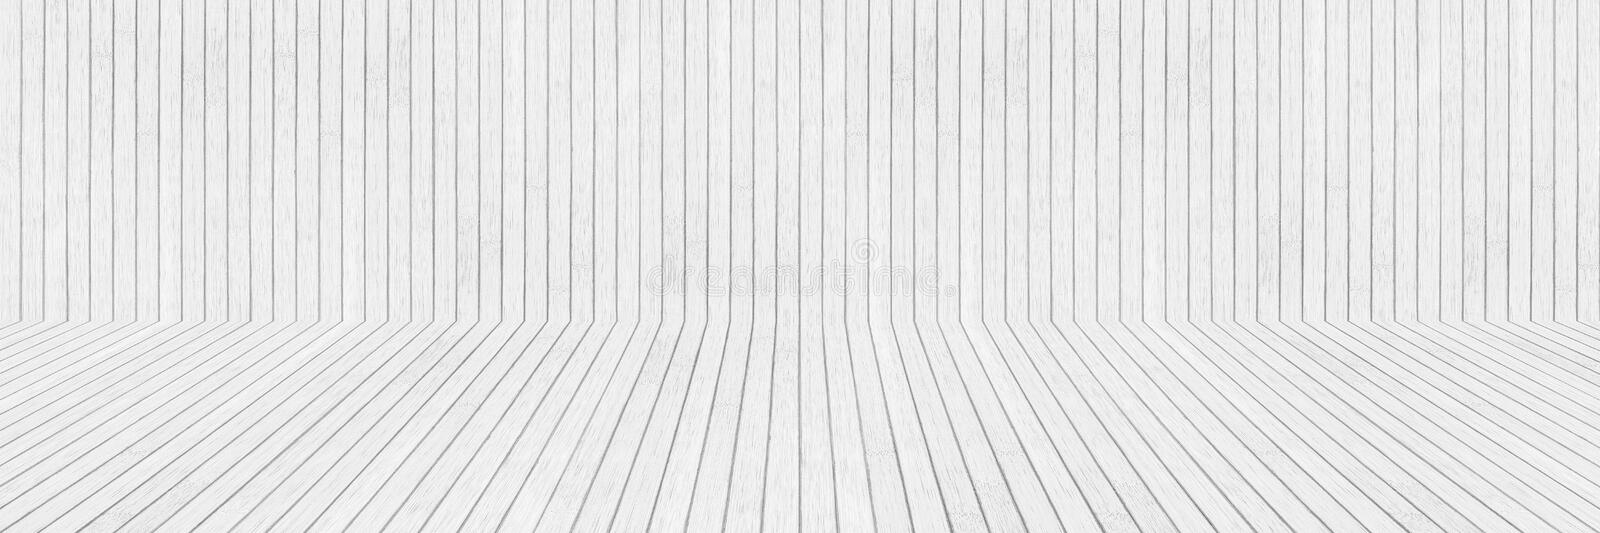 Horizontal white wooden wall and floor for pattern and design. Abstract, backdrop, background, bamboo, beige, blank, board, carpentry, craft, decor, decoration royalty free stock image